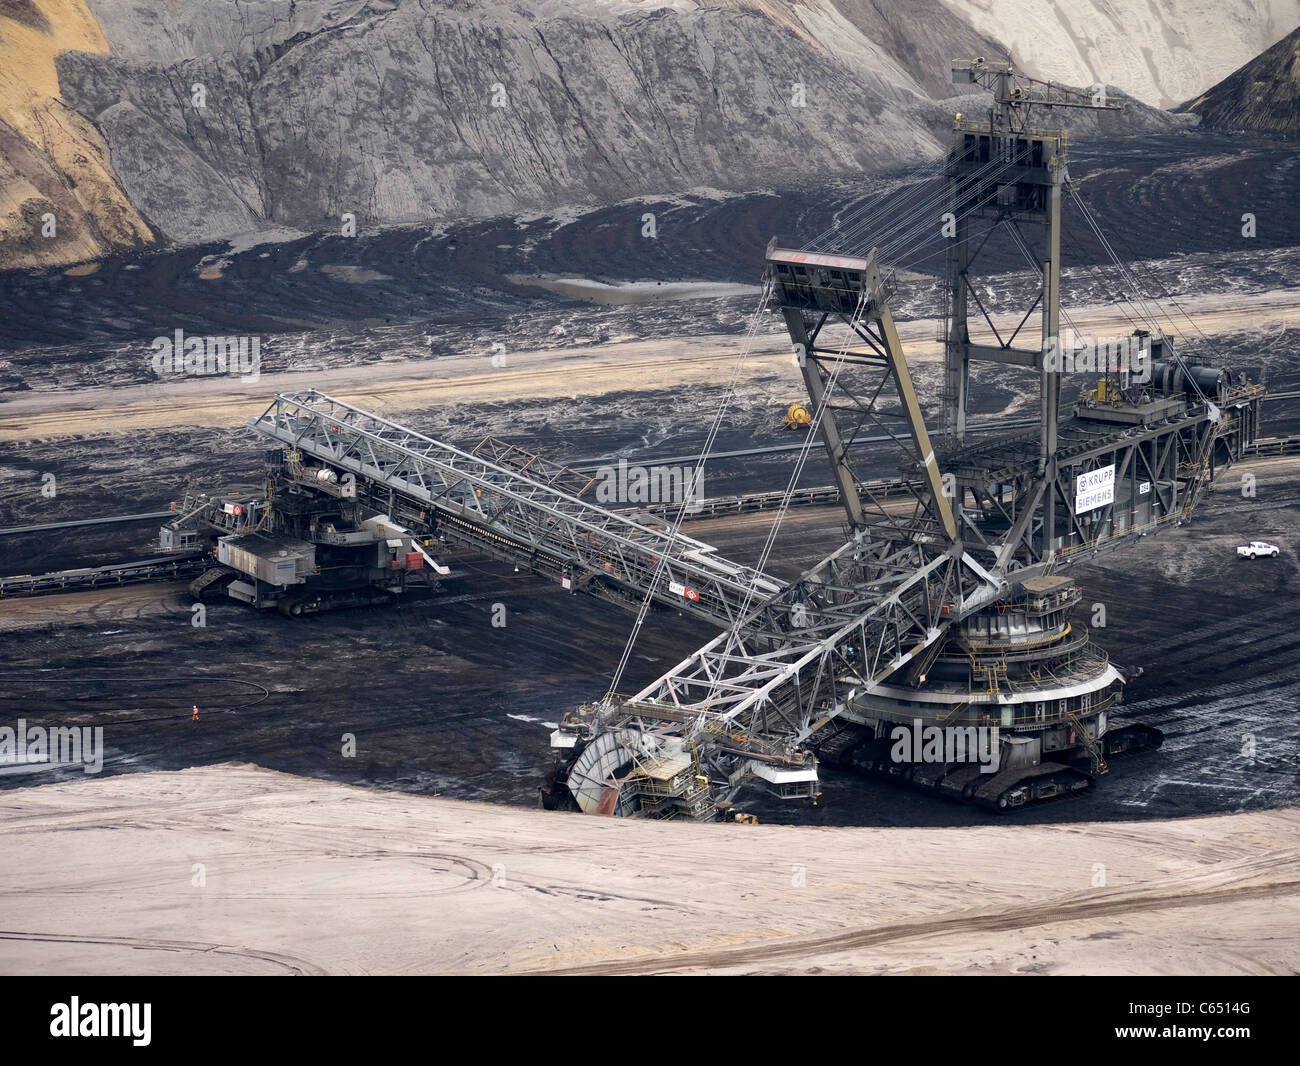 Large excavating machines working at Garzweiler open cast coal mine in Germany Stock Photo